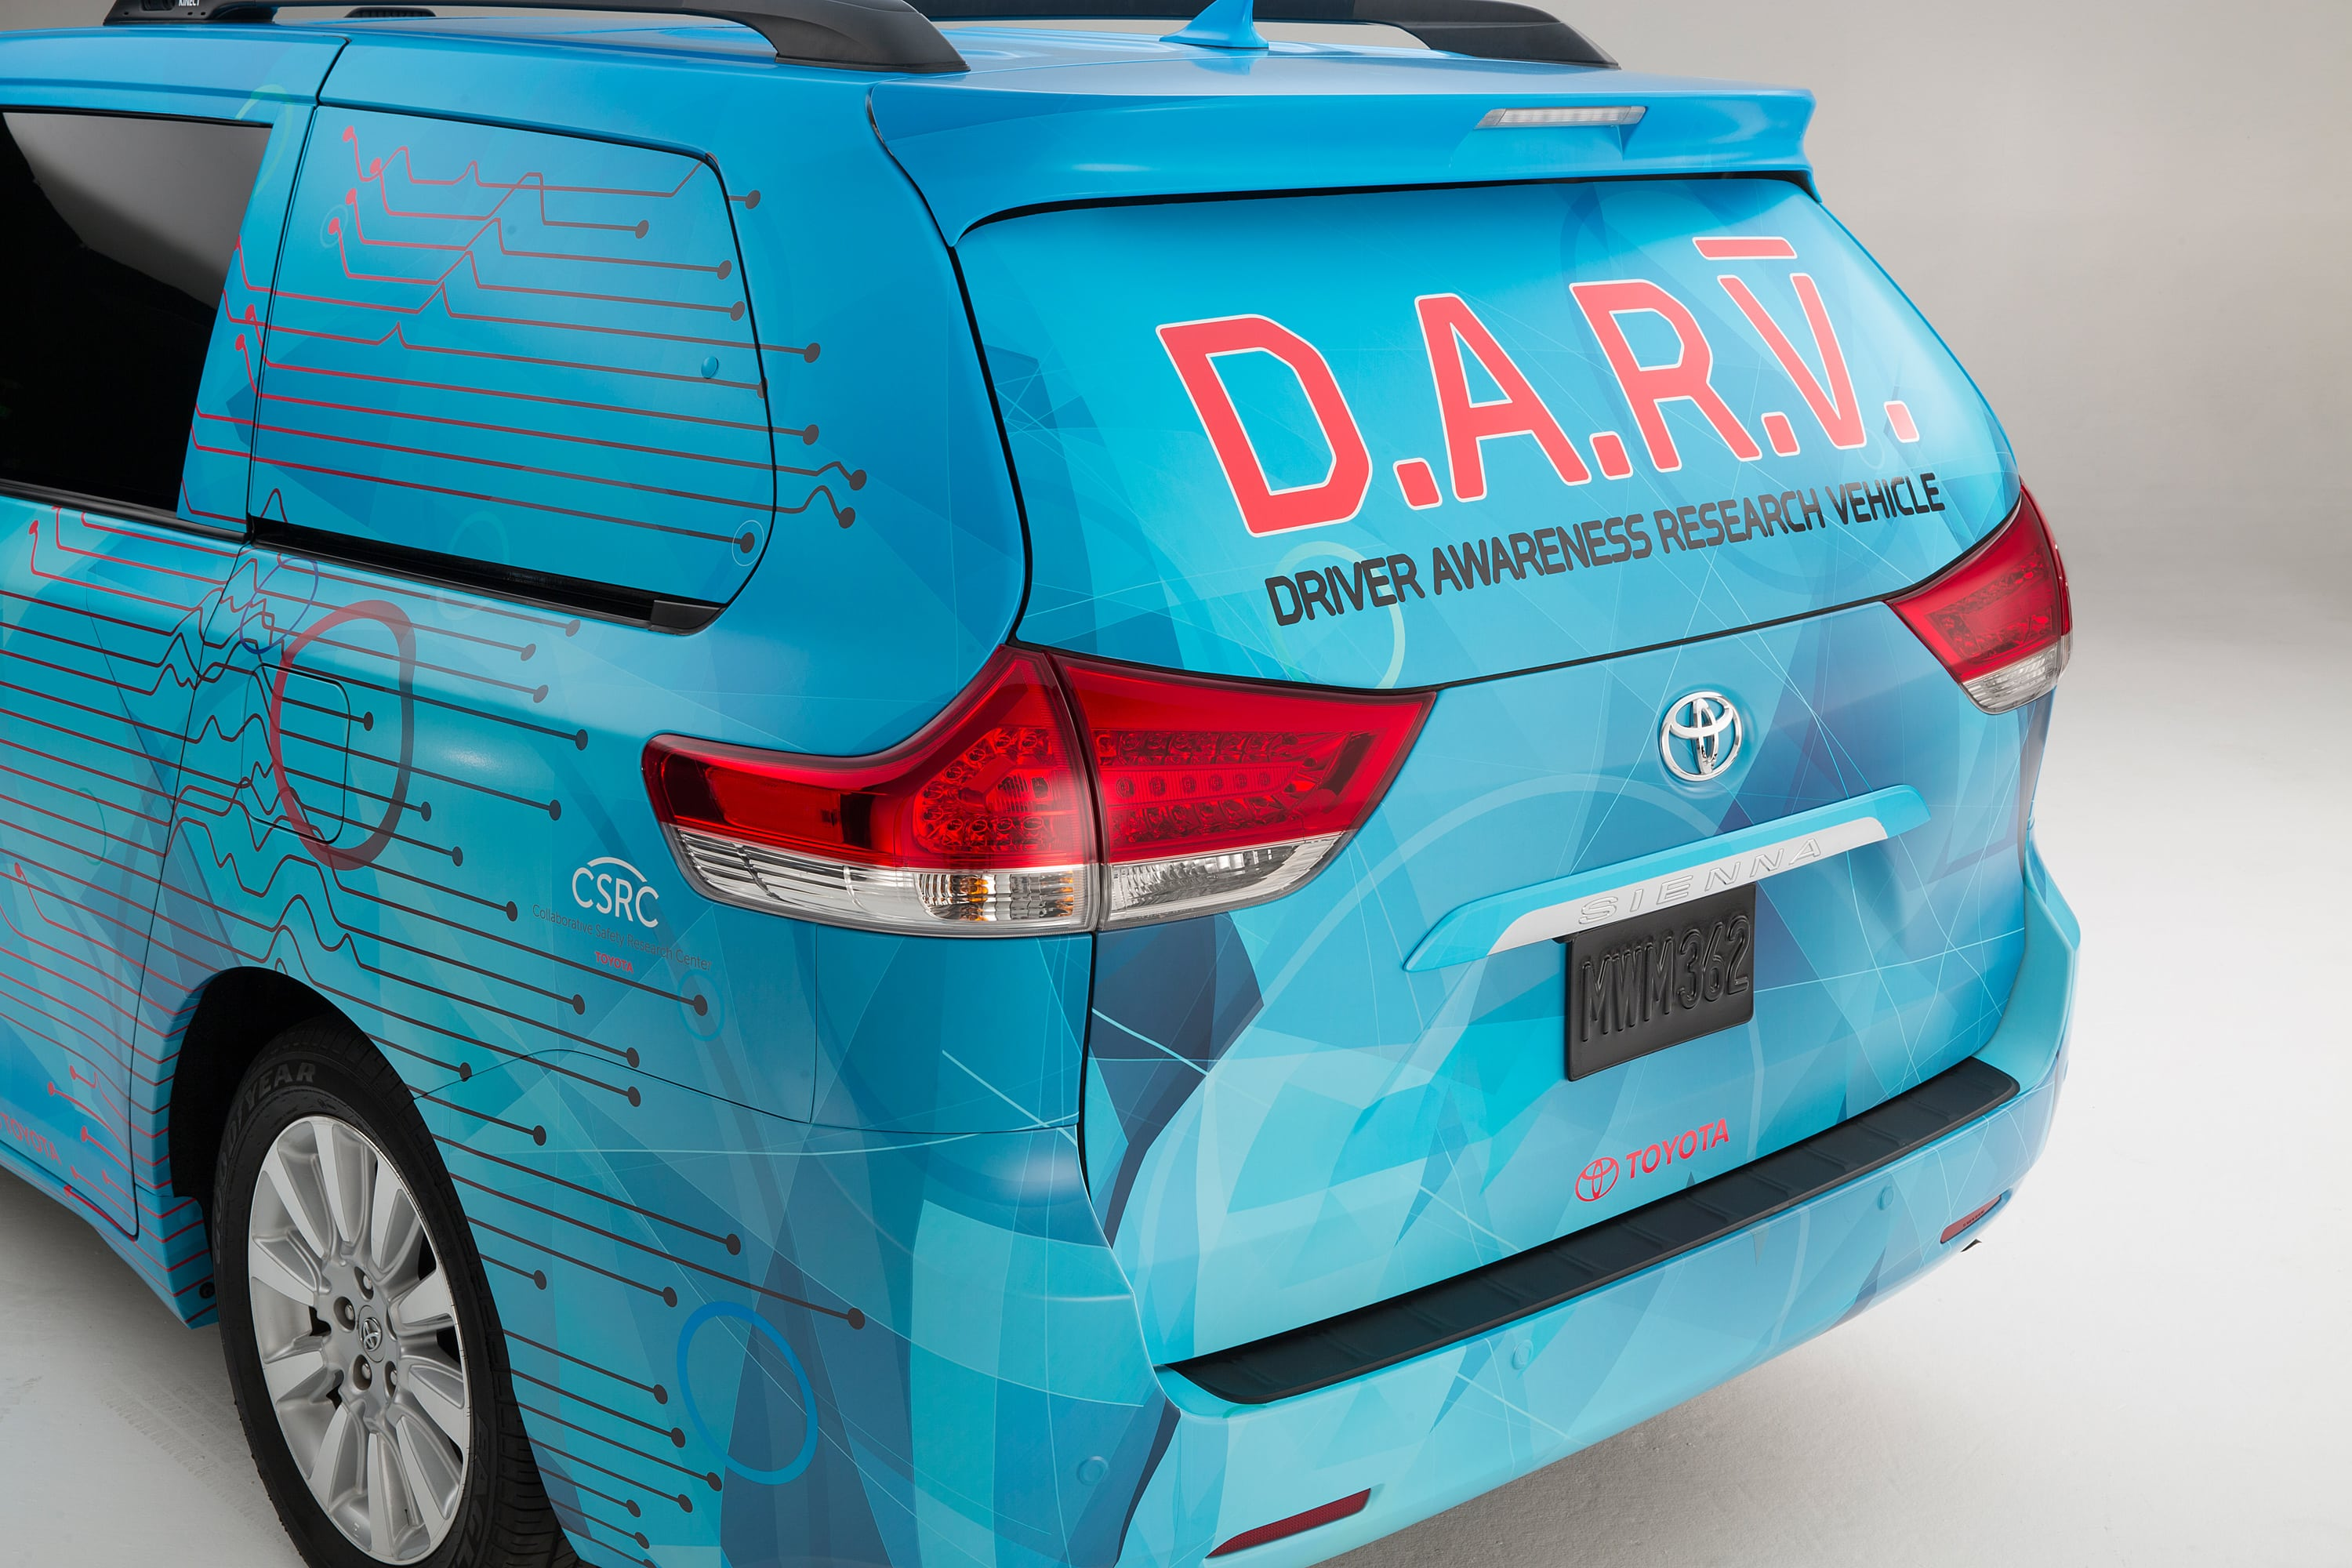 Toyota using DARV with Microsoft Kinect to combat distracted driving